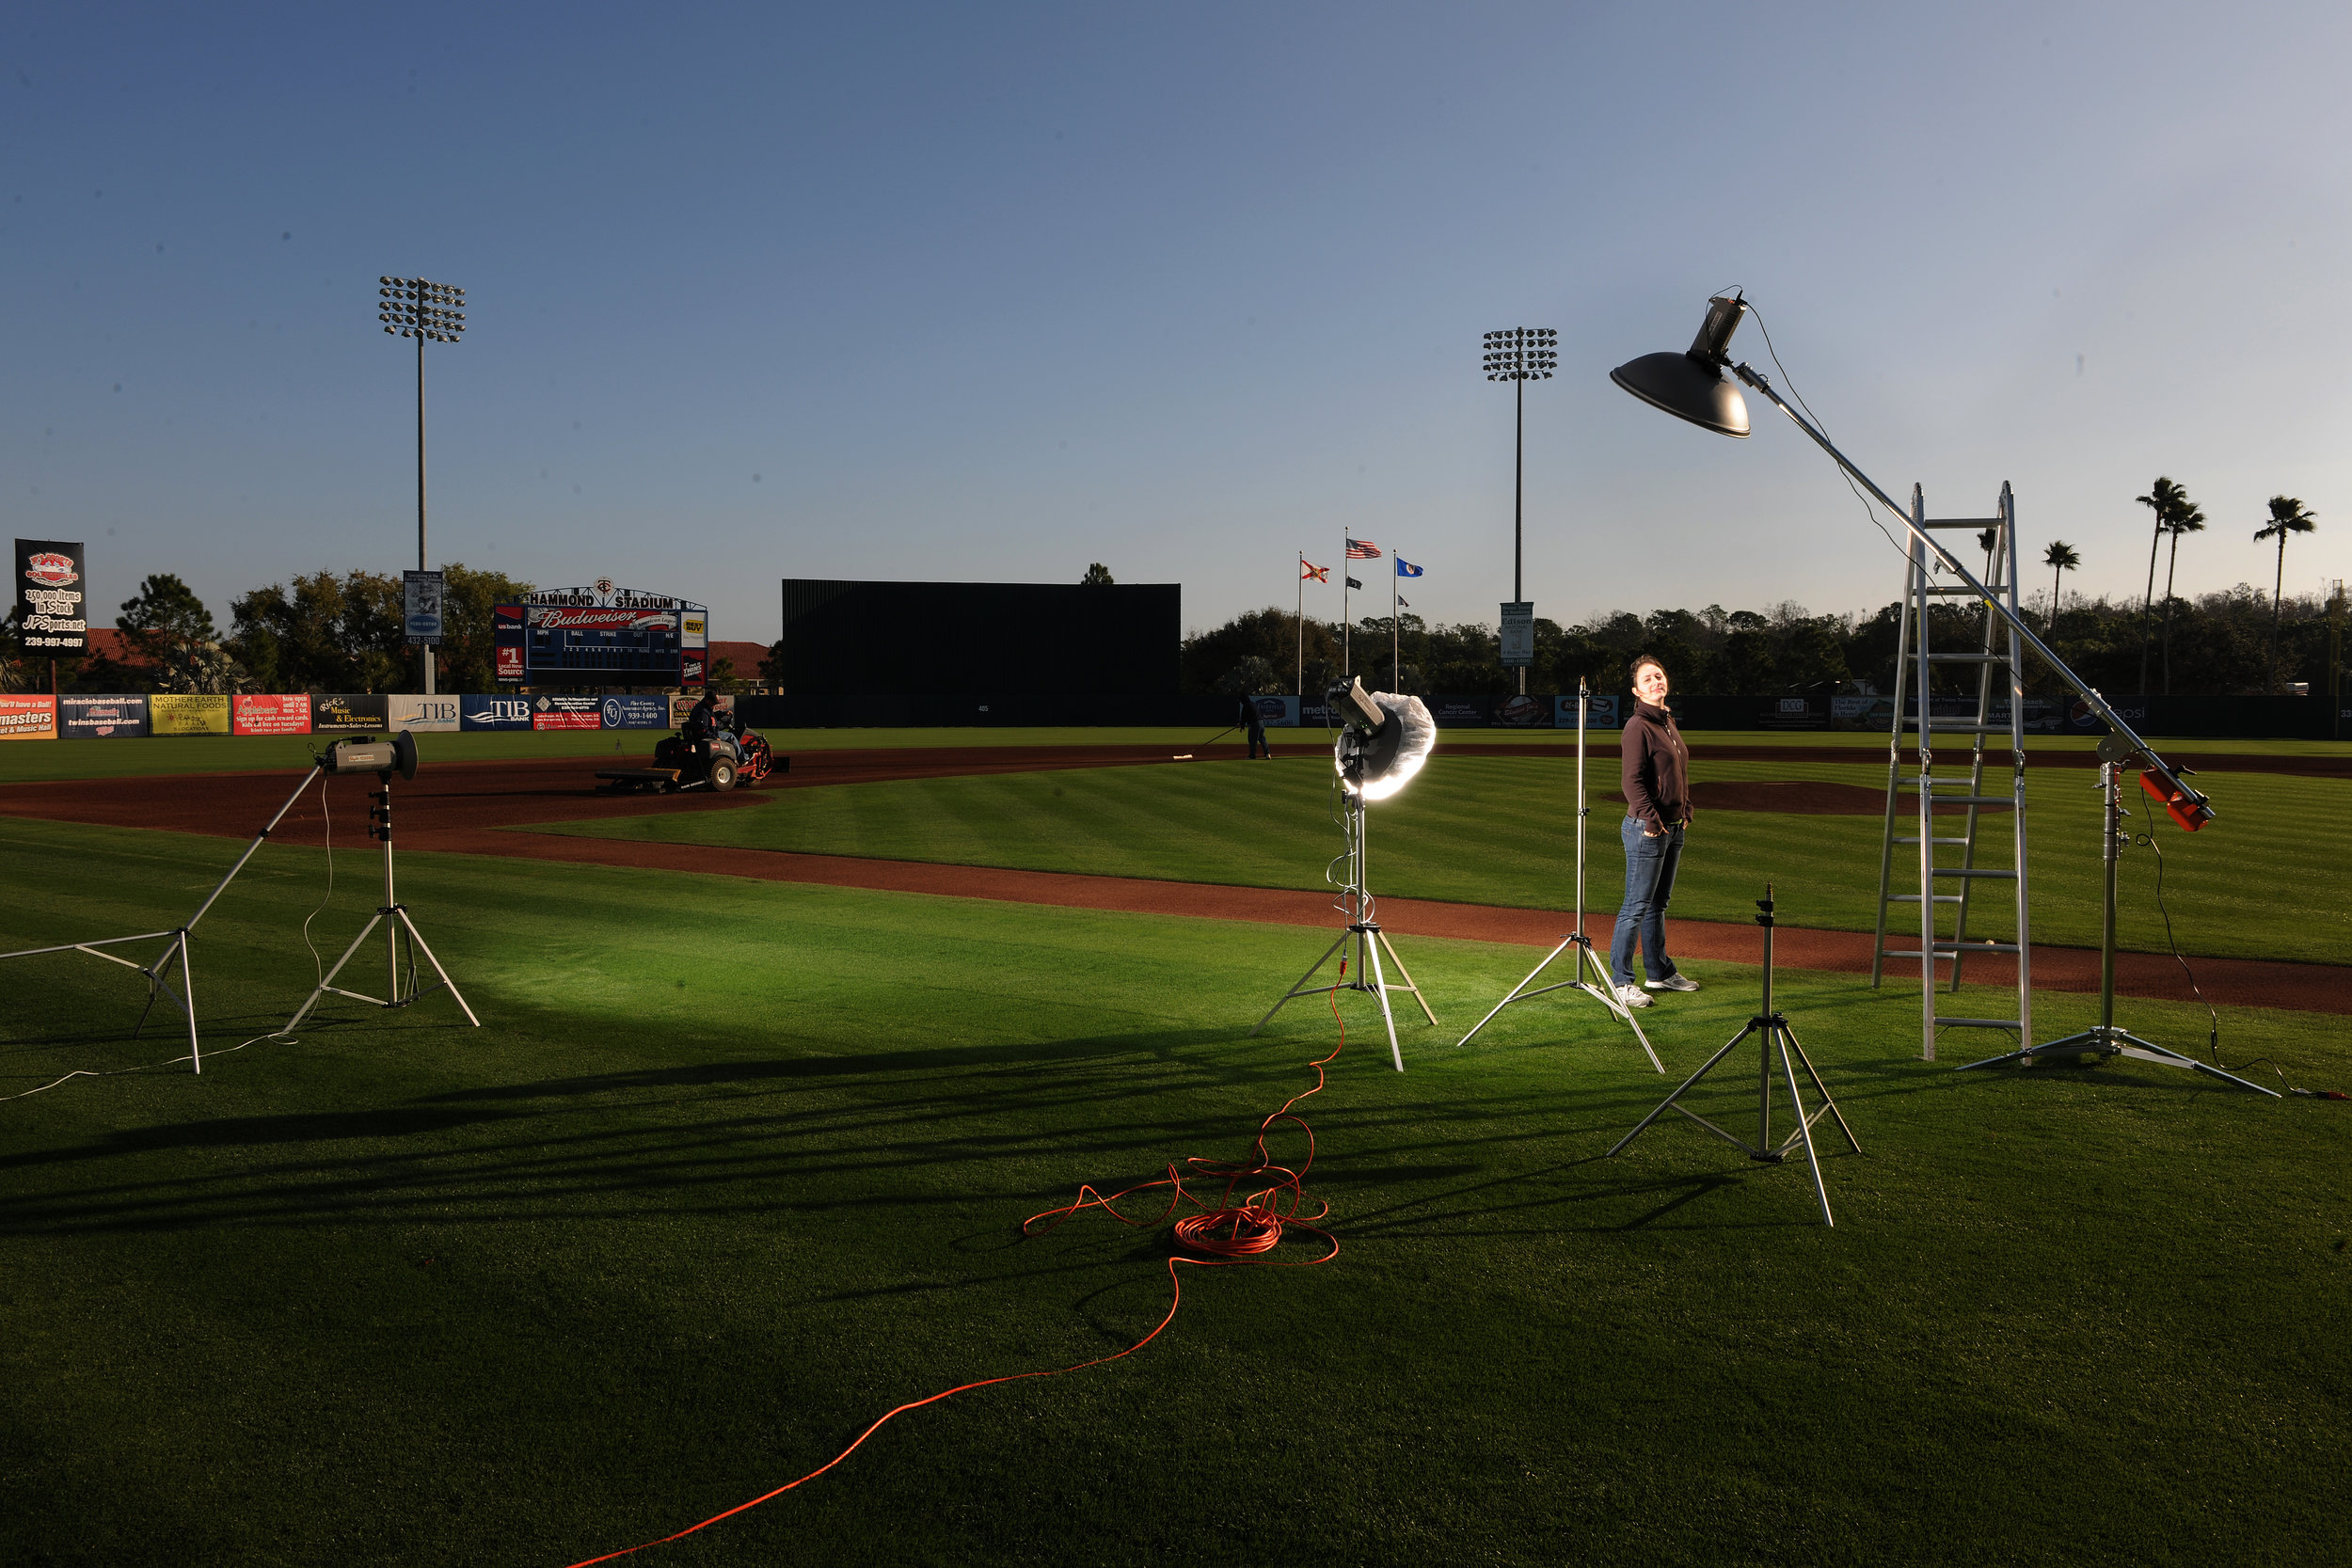 On set at some baseball field in Naples for some baseball player.